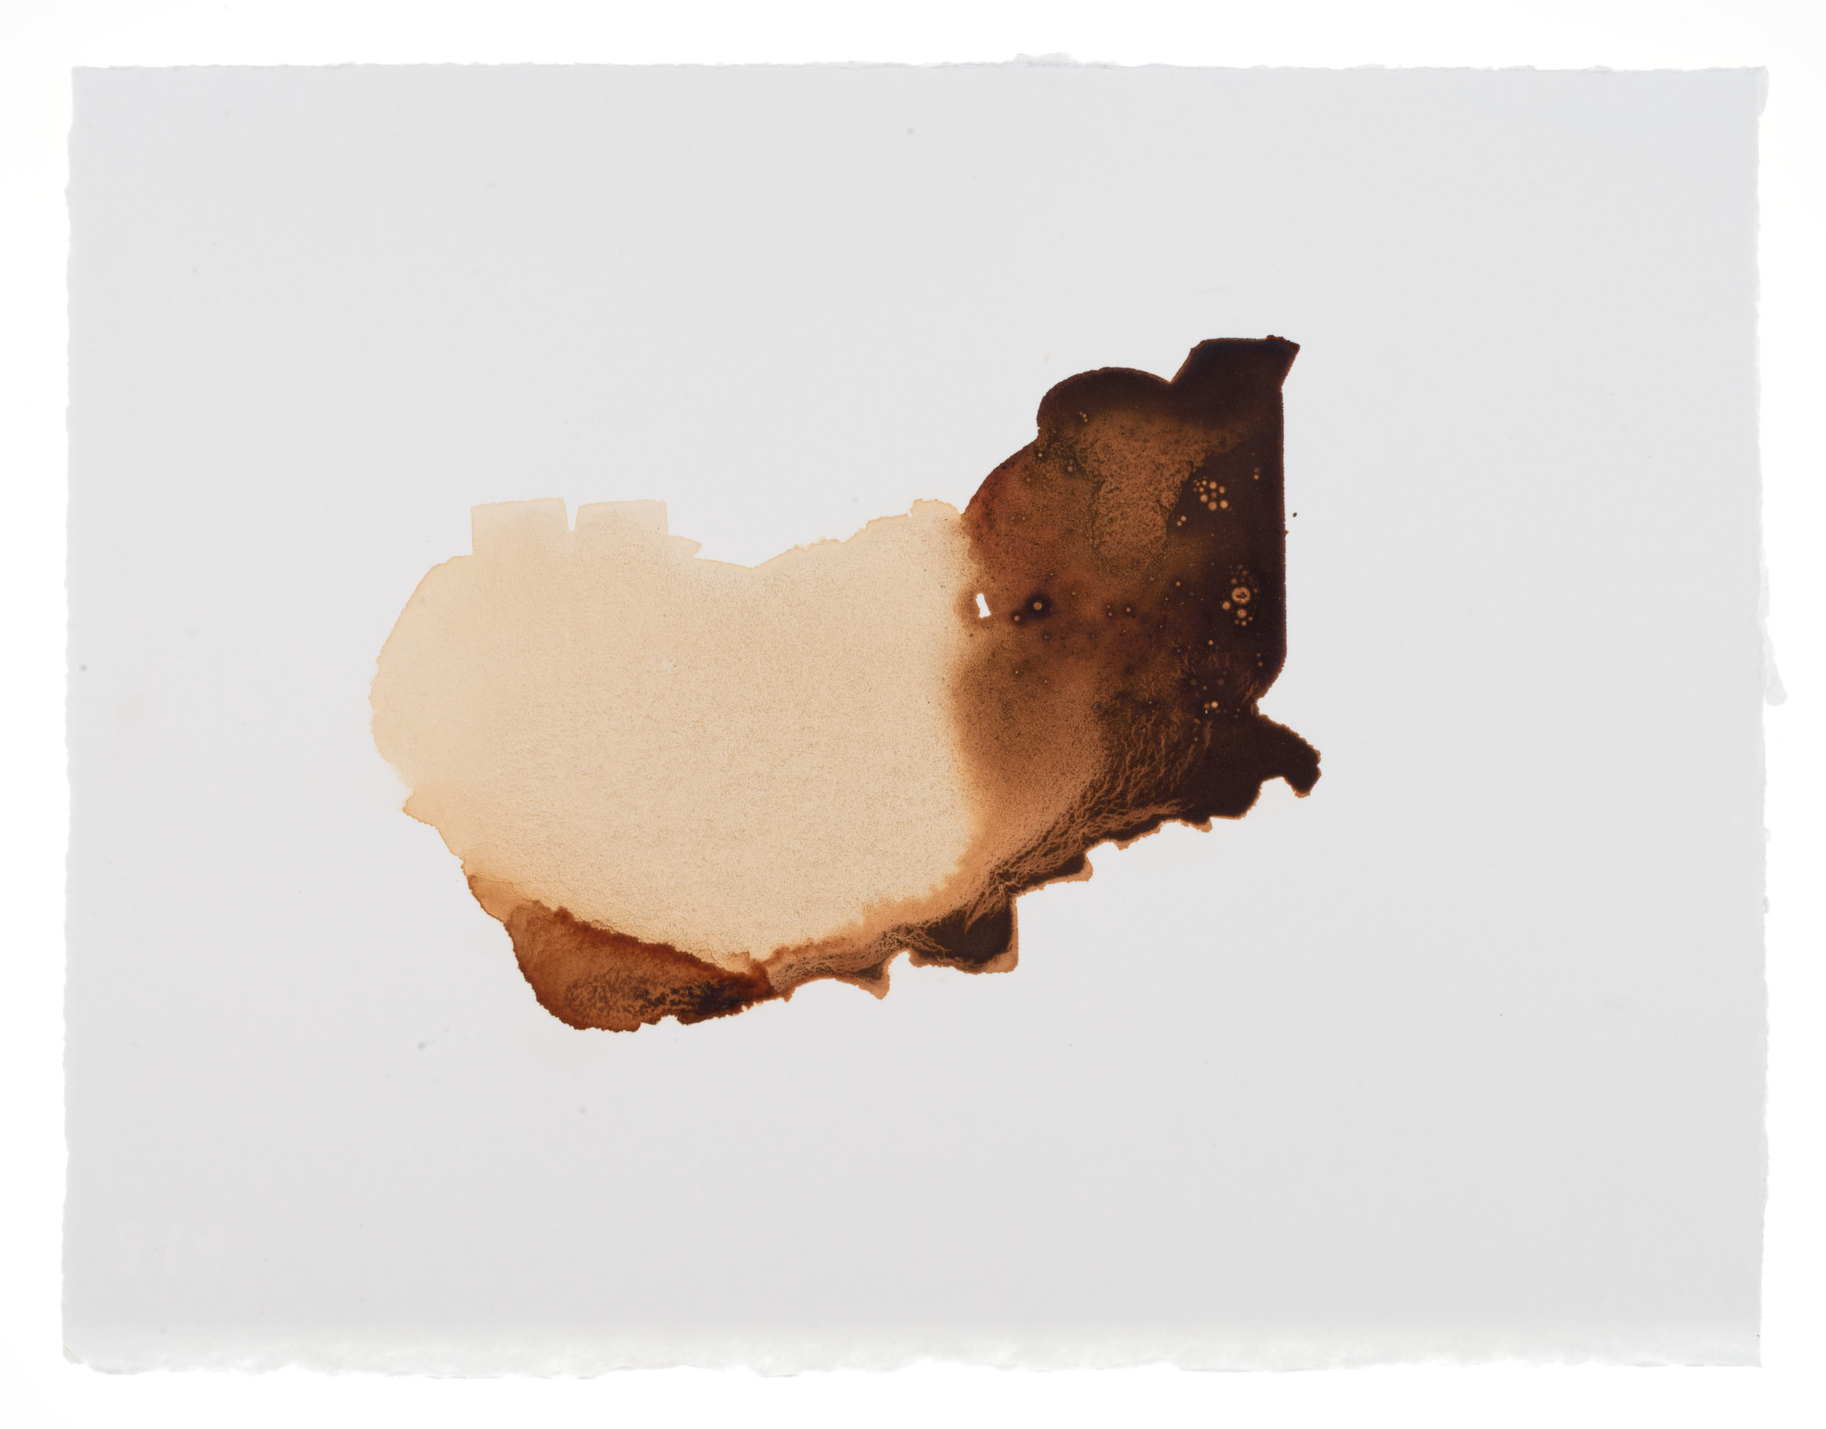 cornelia white swann,  Of the Earth , 2015. Madder root on watercolor paper, 11 1/2 x 15 inches. Documented January 2015.